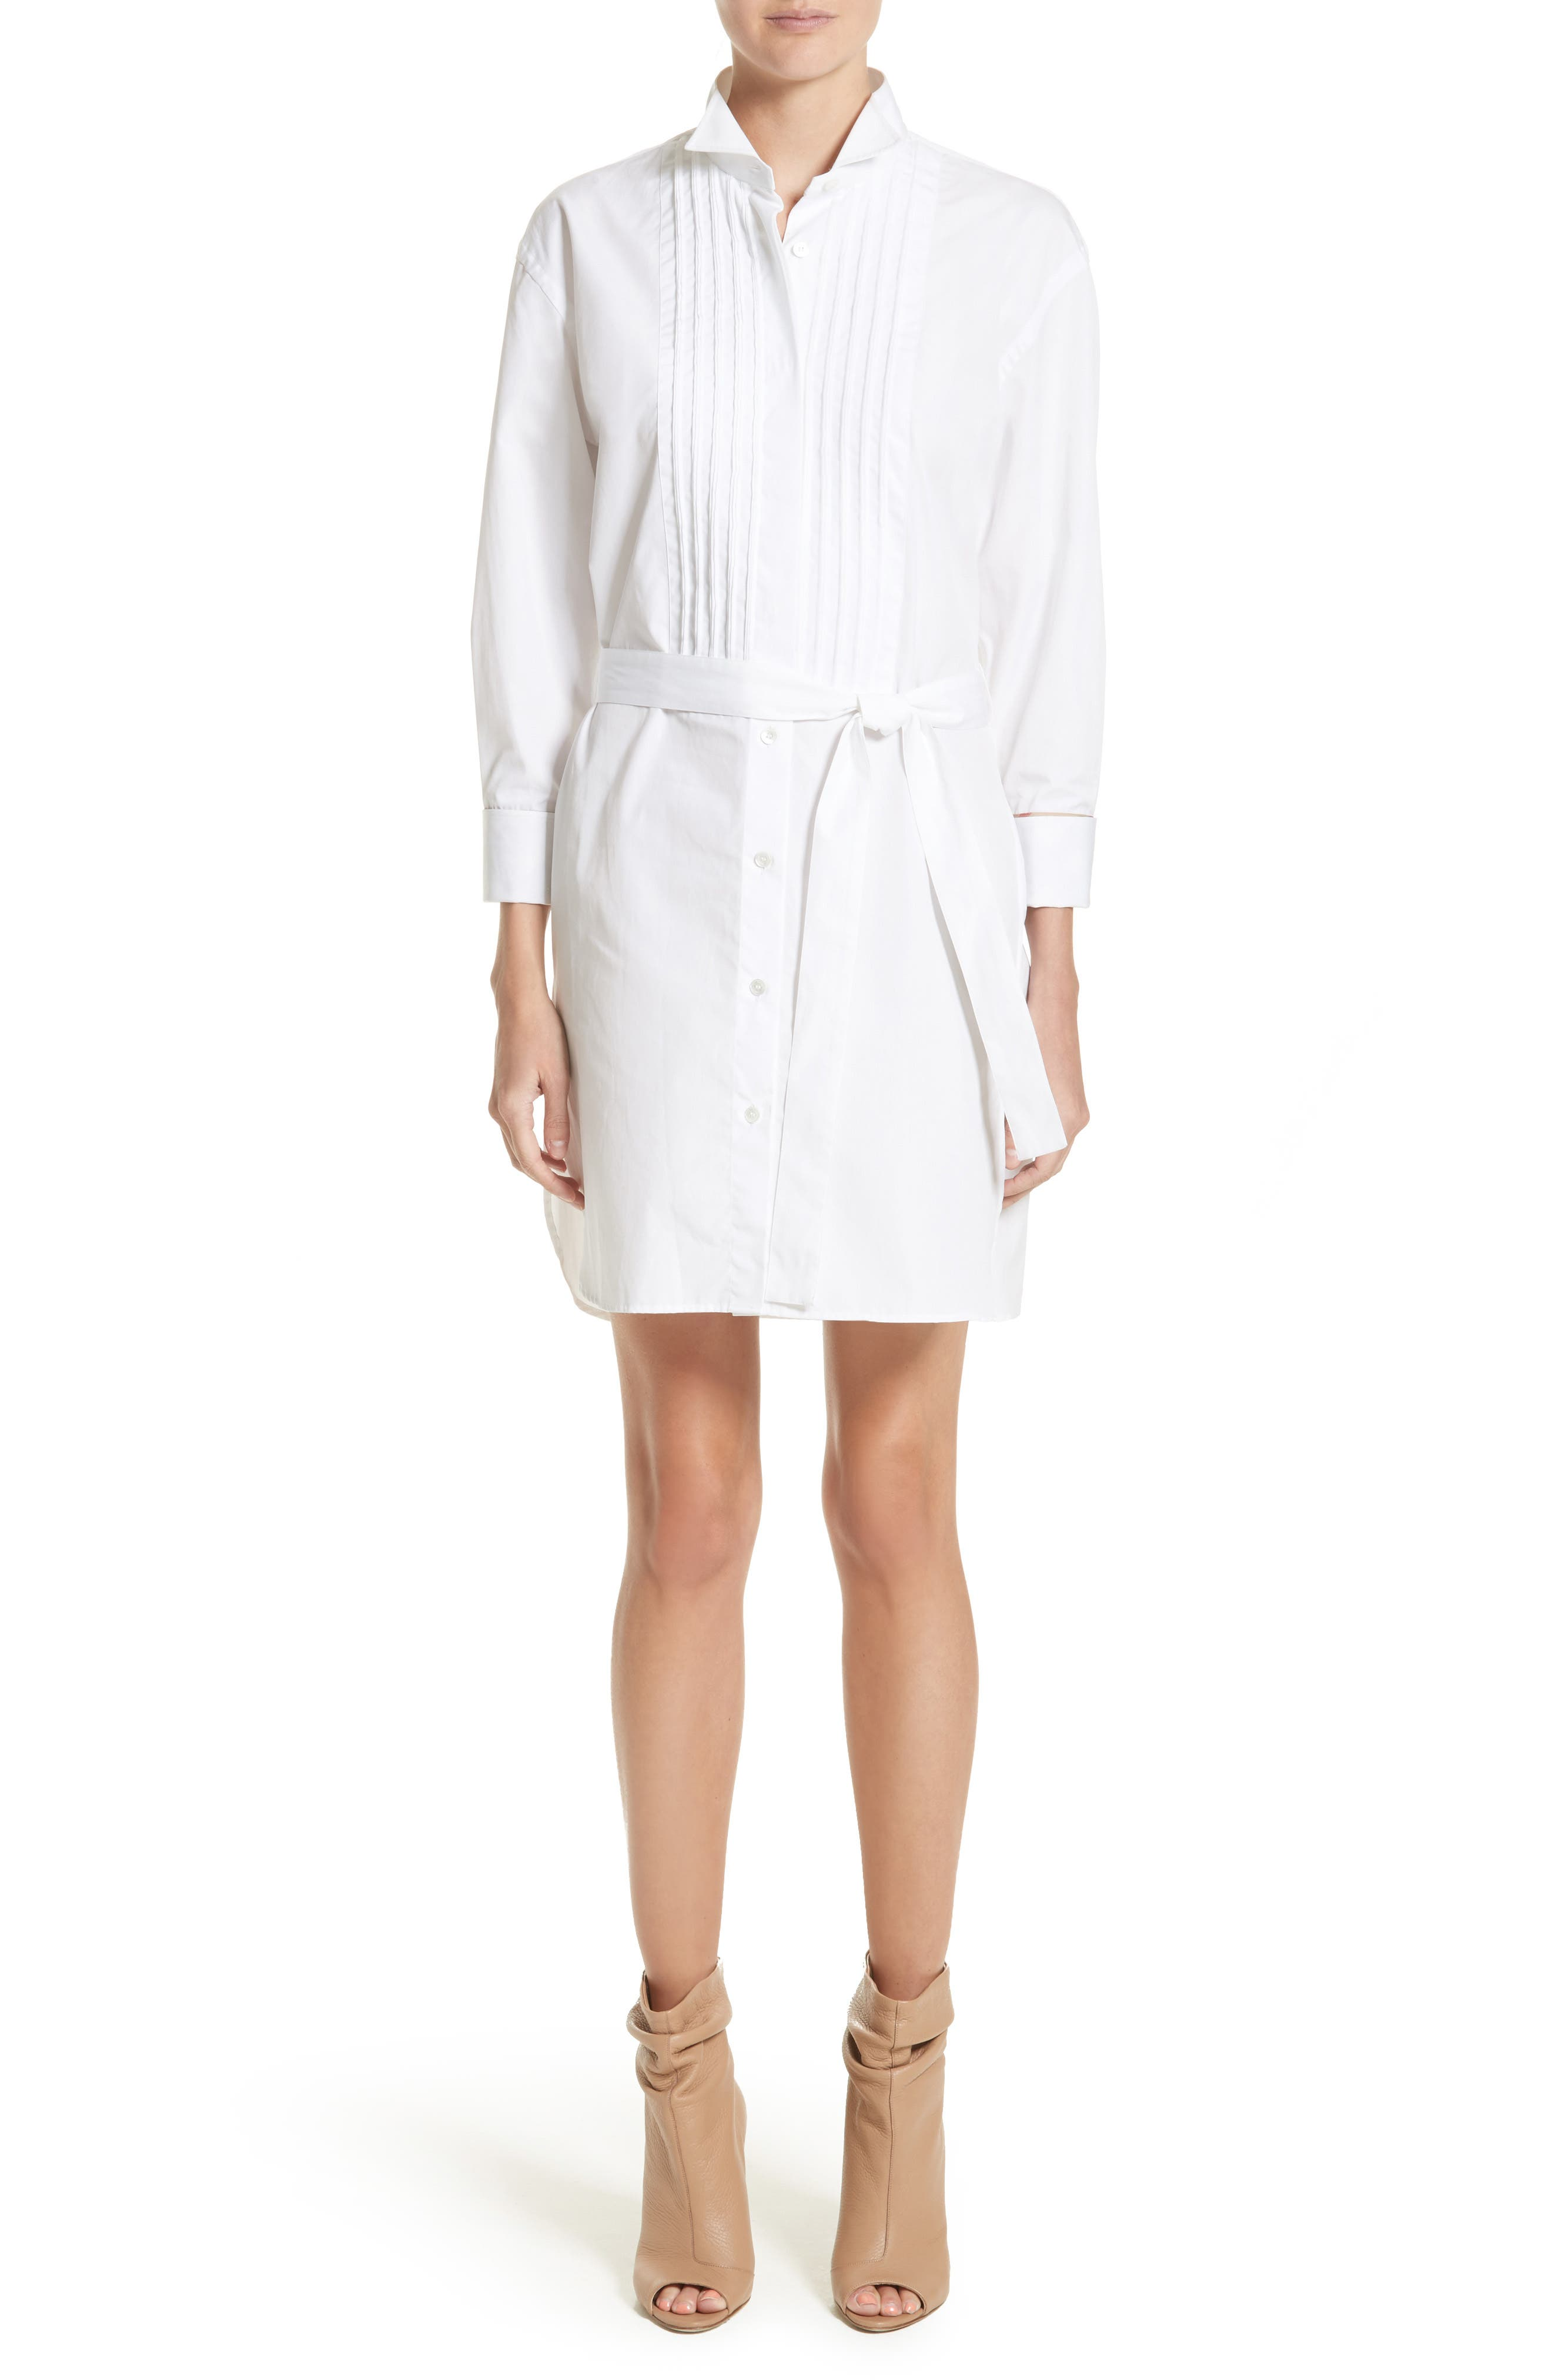 Madeline Cotton Poplin Shirtdress,                             Main thumbnail 1, color,                             100